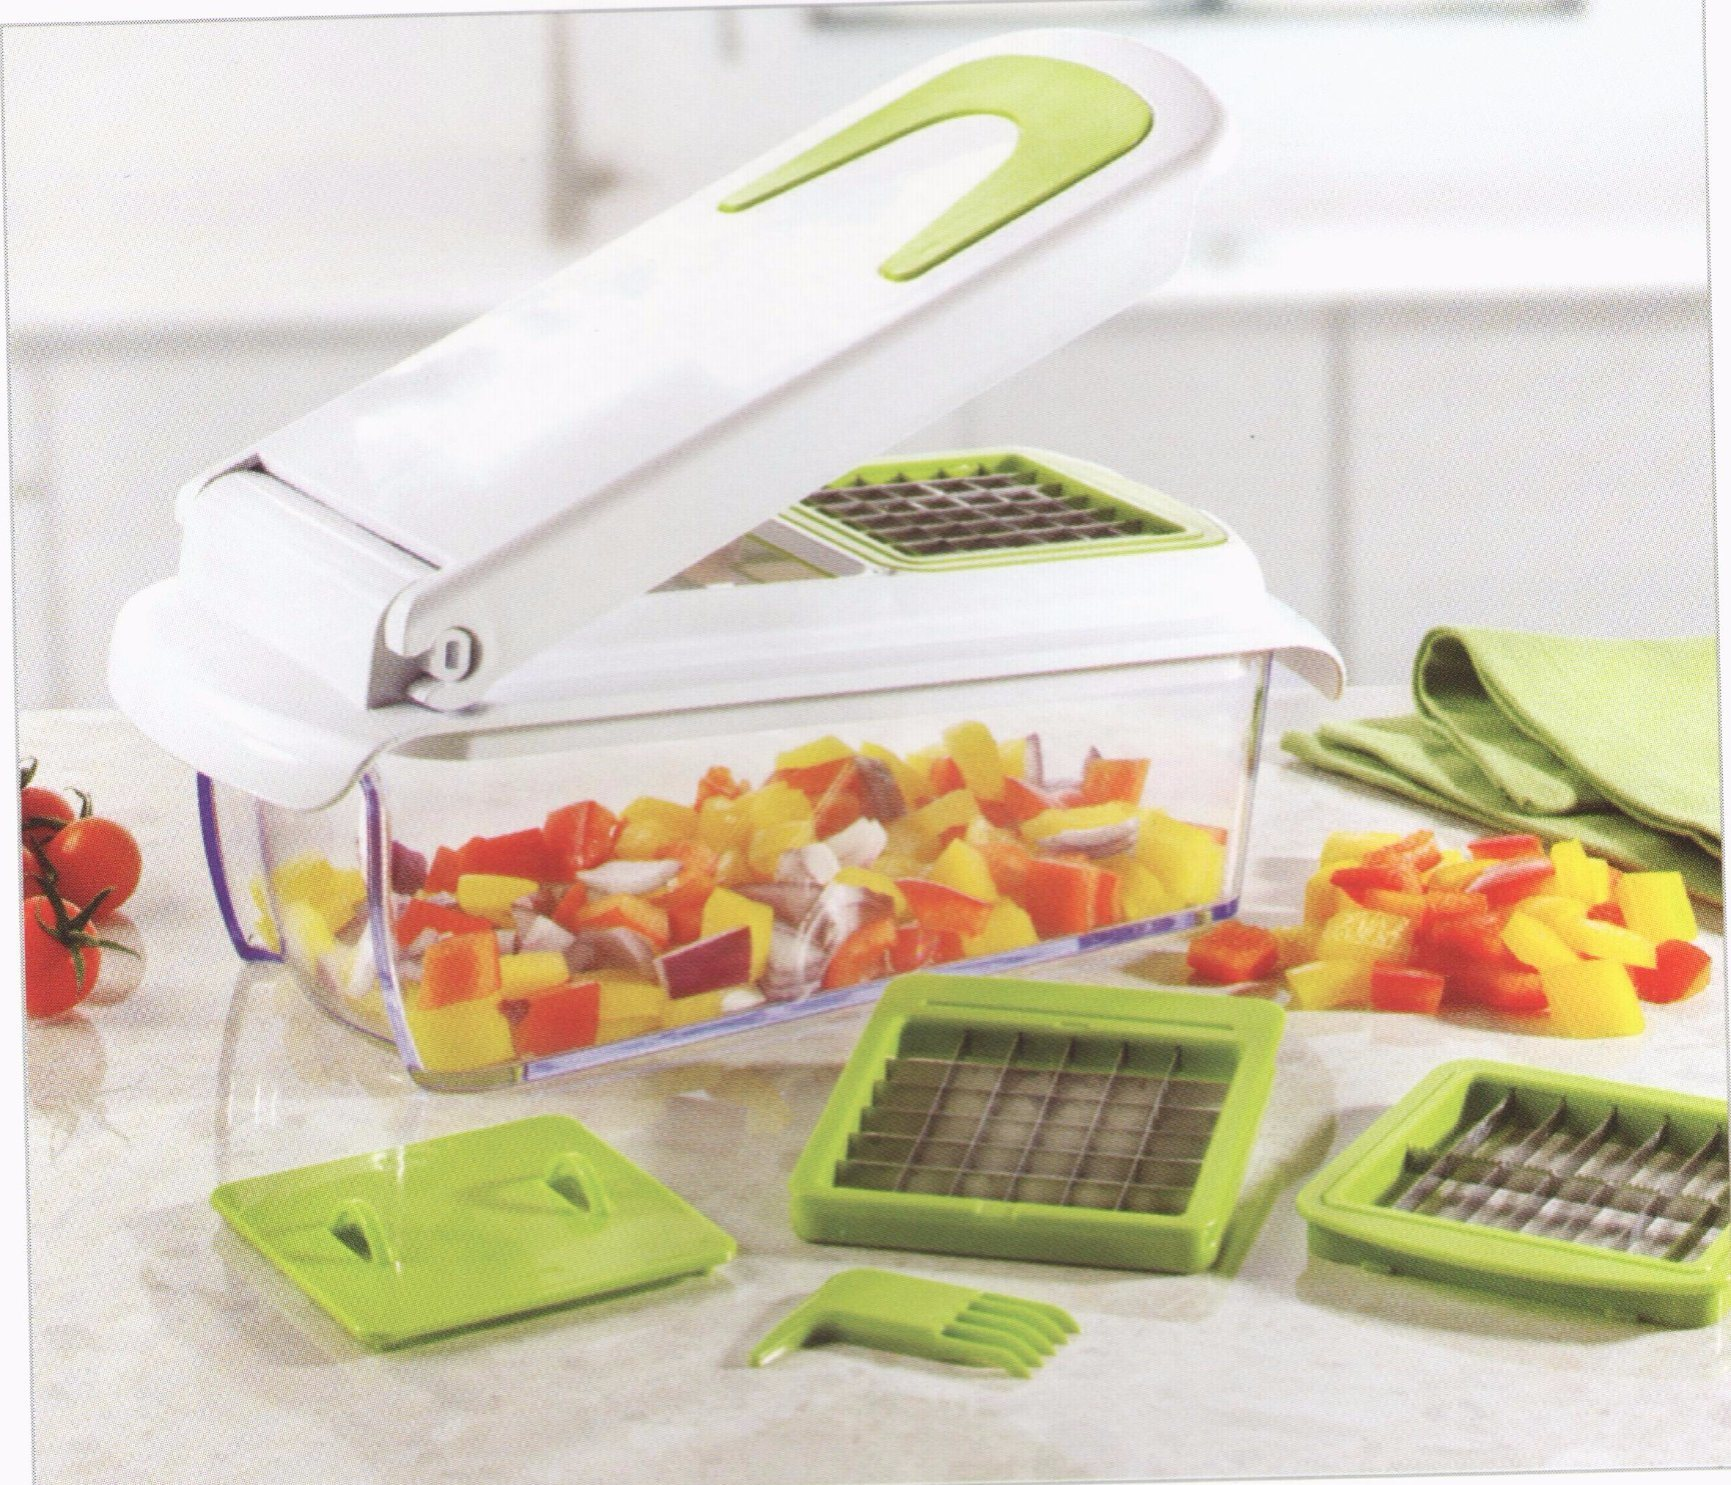 Plastic Food Processor Vegetable Chopper Dice Slice Cutting Food Machine Cg067